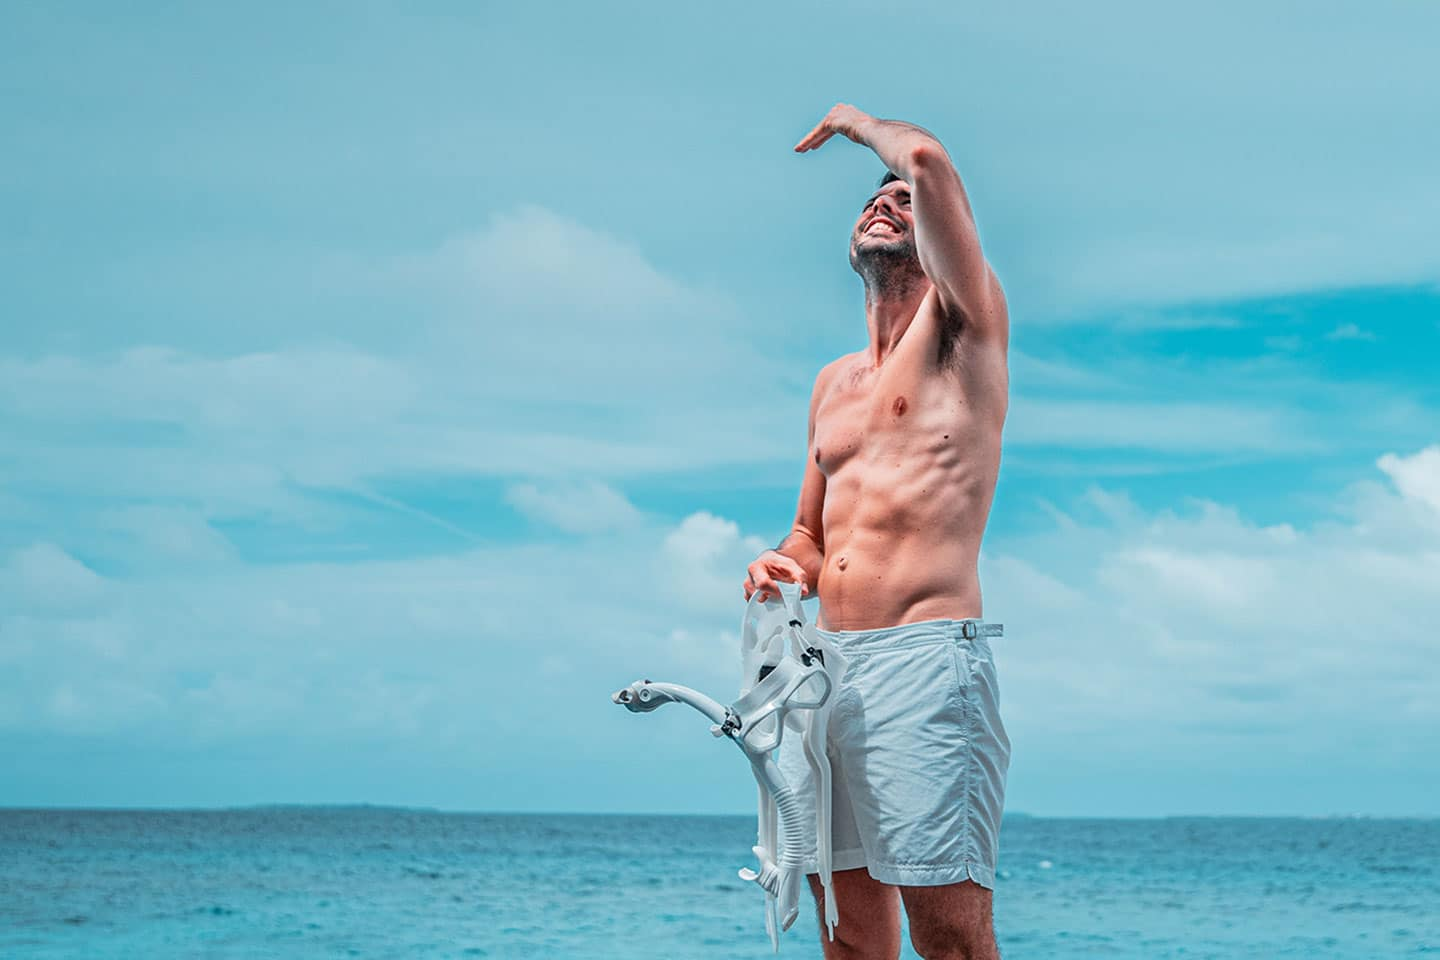 Man checking the weather conditions before snorkeling